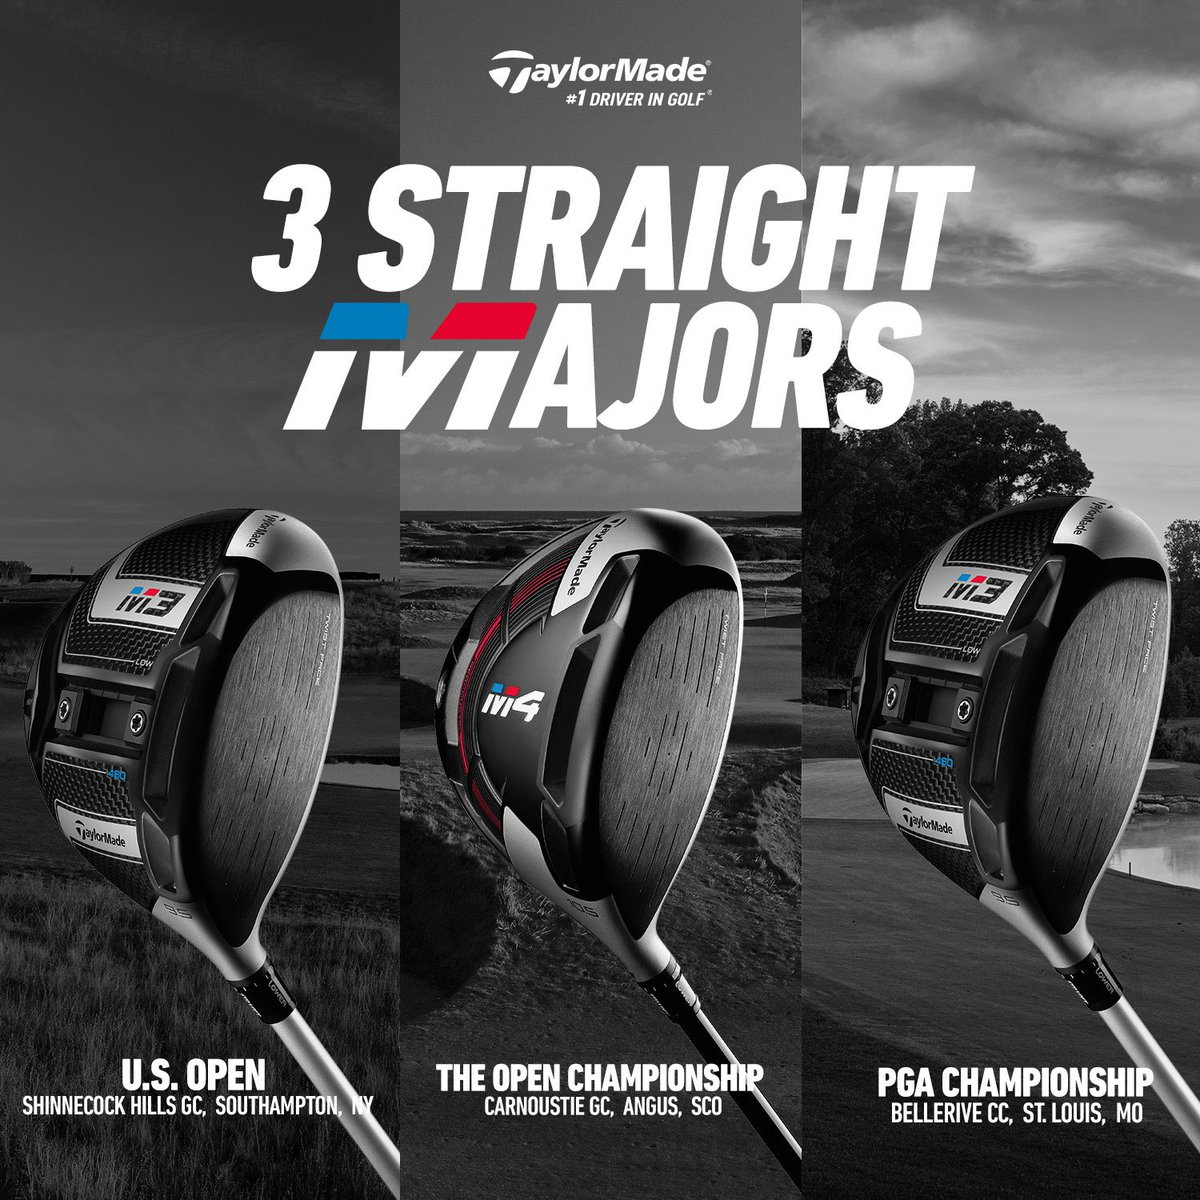 Straight Distance. Straight Majors. #TwistFace takes home 3-straight major championships to close out 2018. #USOpen #OpenChamp #PGAChamp